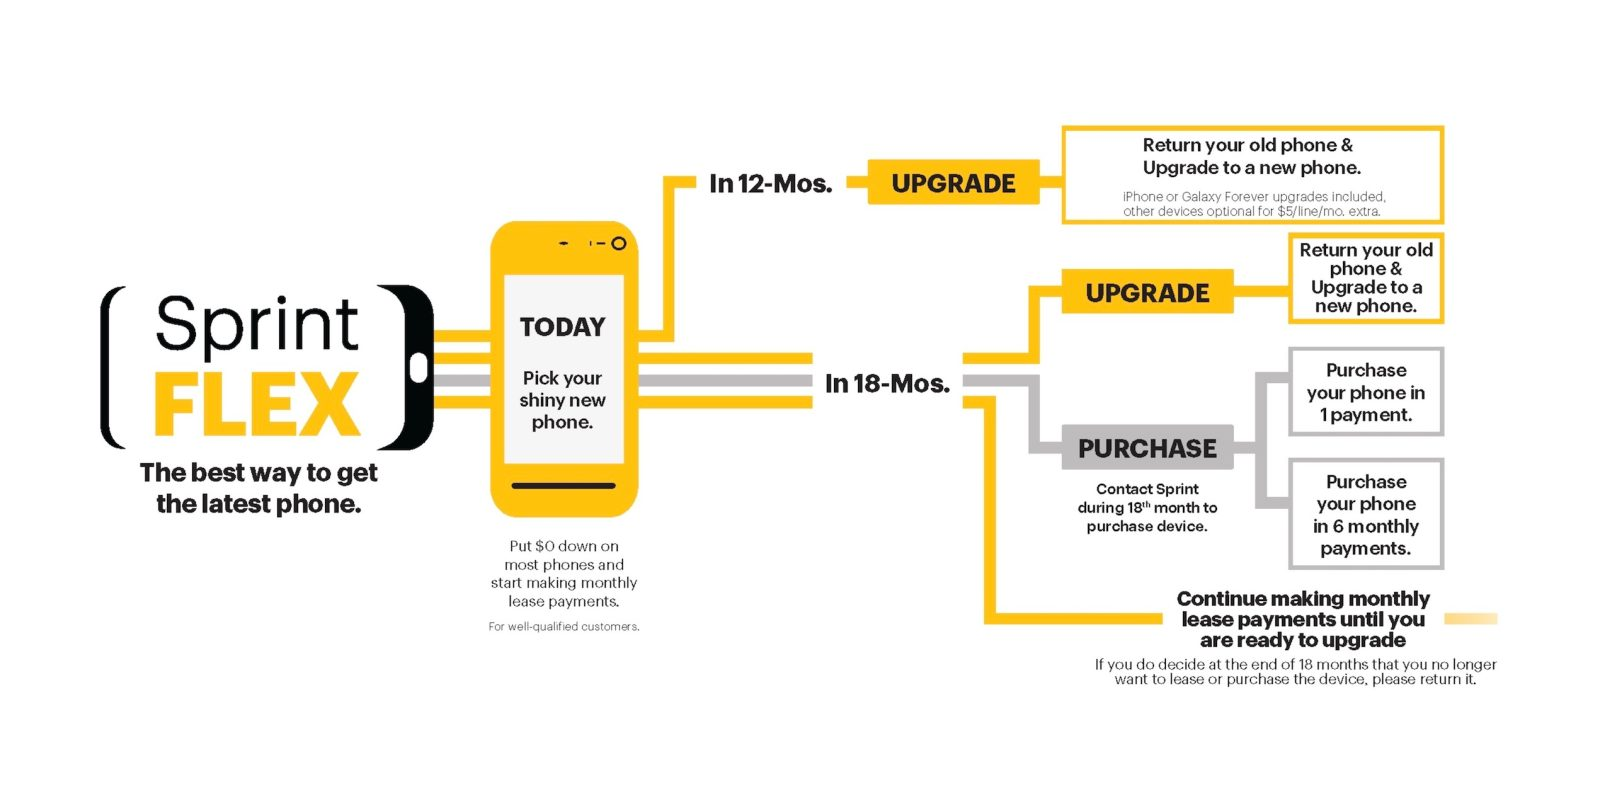 Sprint Flex and Sprint Deals announced as new flexible